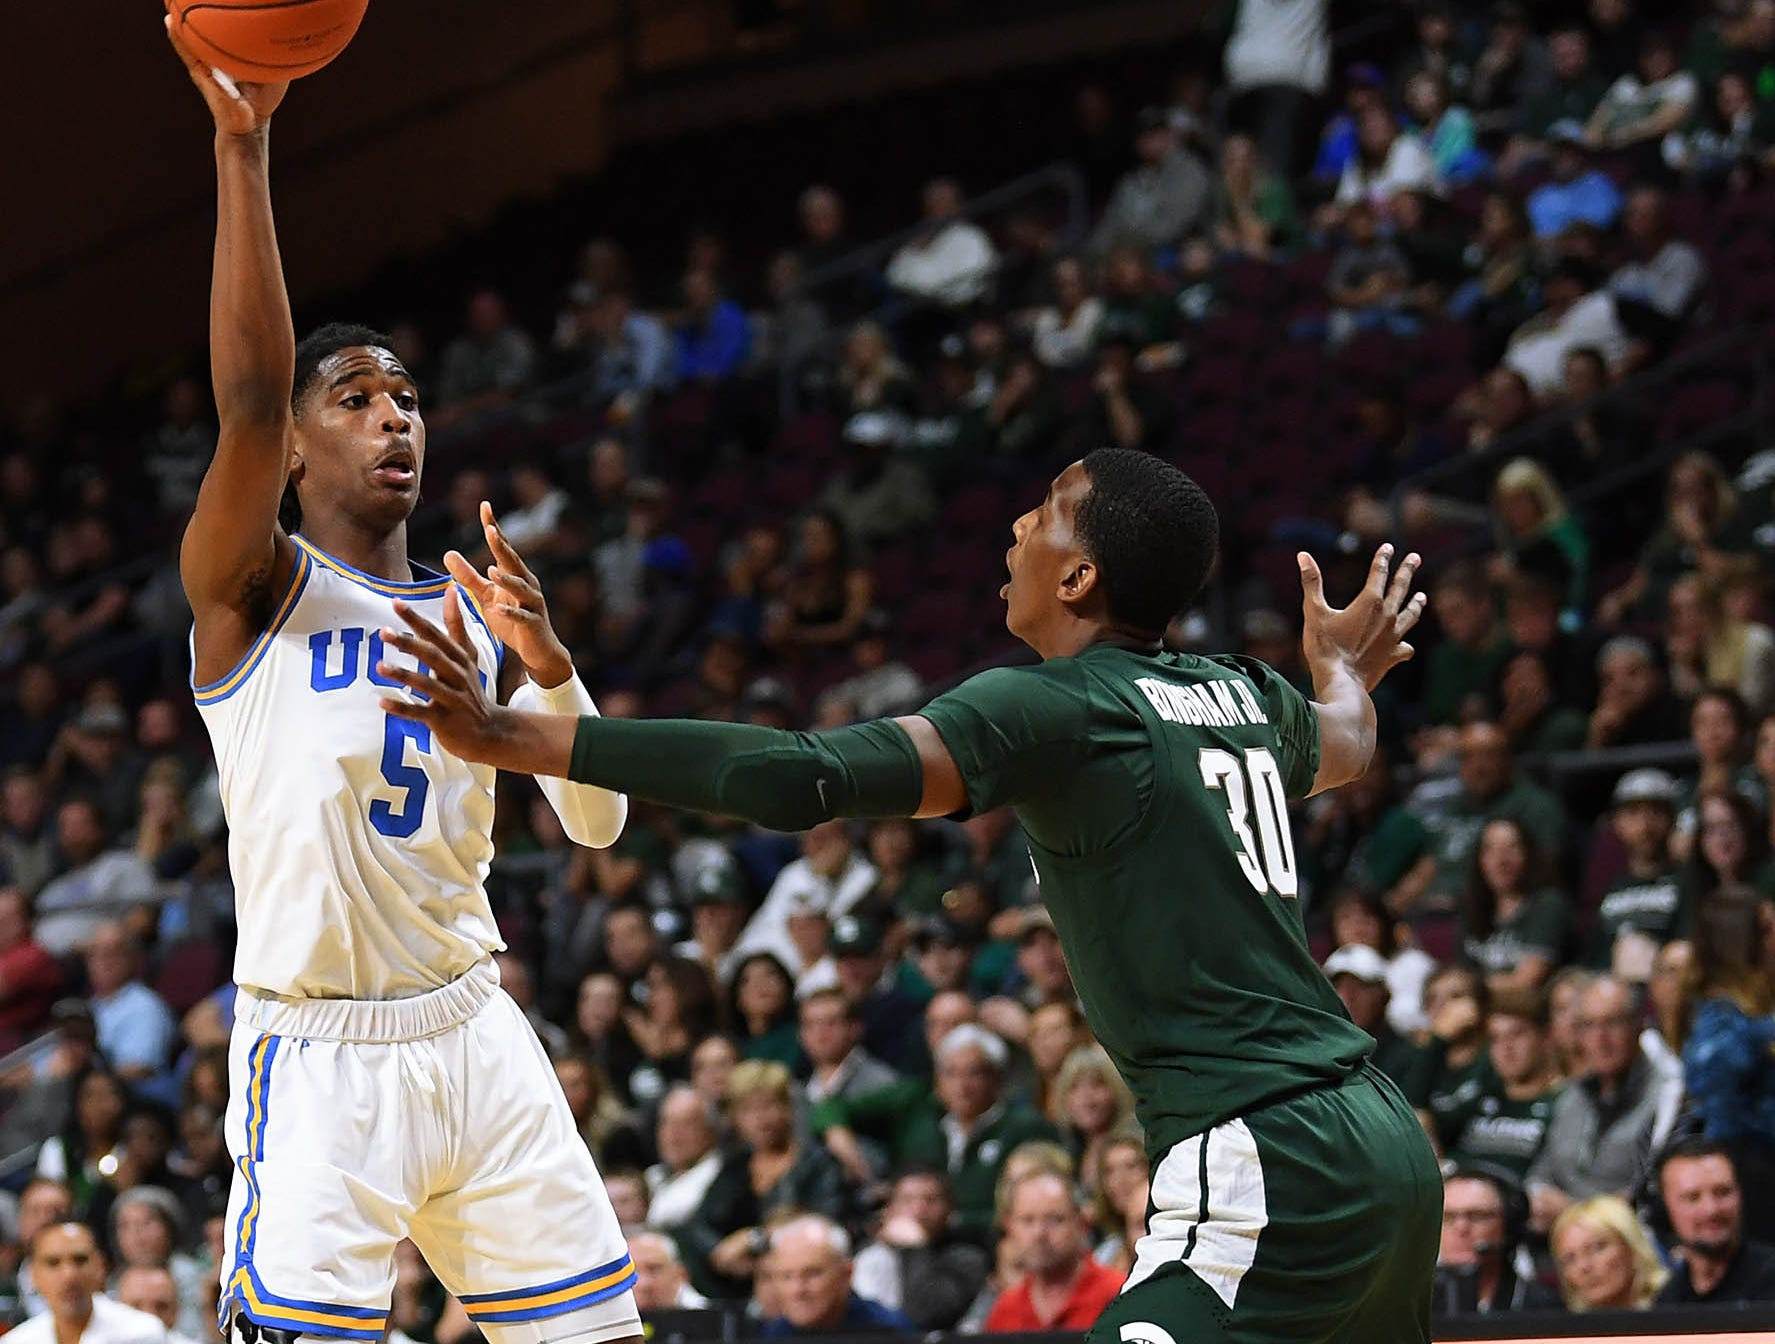 Nov 22, 2018; Las Vegas, NV, USA; UCLA Bruins guard Chris Smith (5) passes over the defense of Michigan State Spartans forward Marcus Bingham Jr. (30) during the second half at Orleans Arena. Mandatory Credit: Stephen R. Sylvanie-USA TODAY Sports